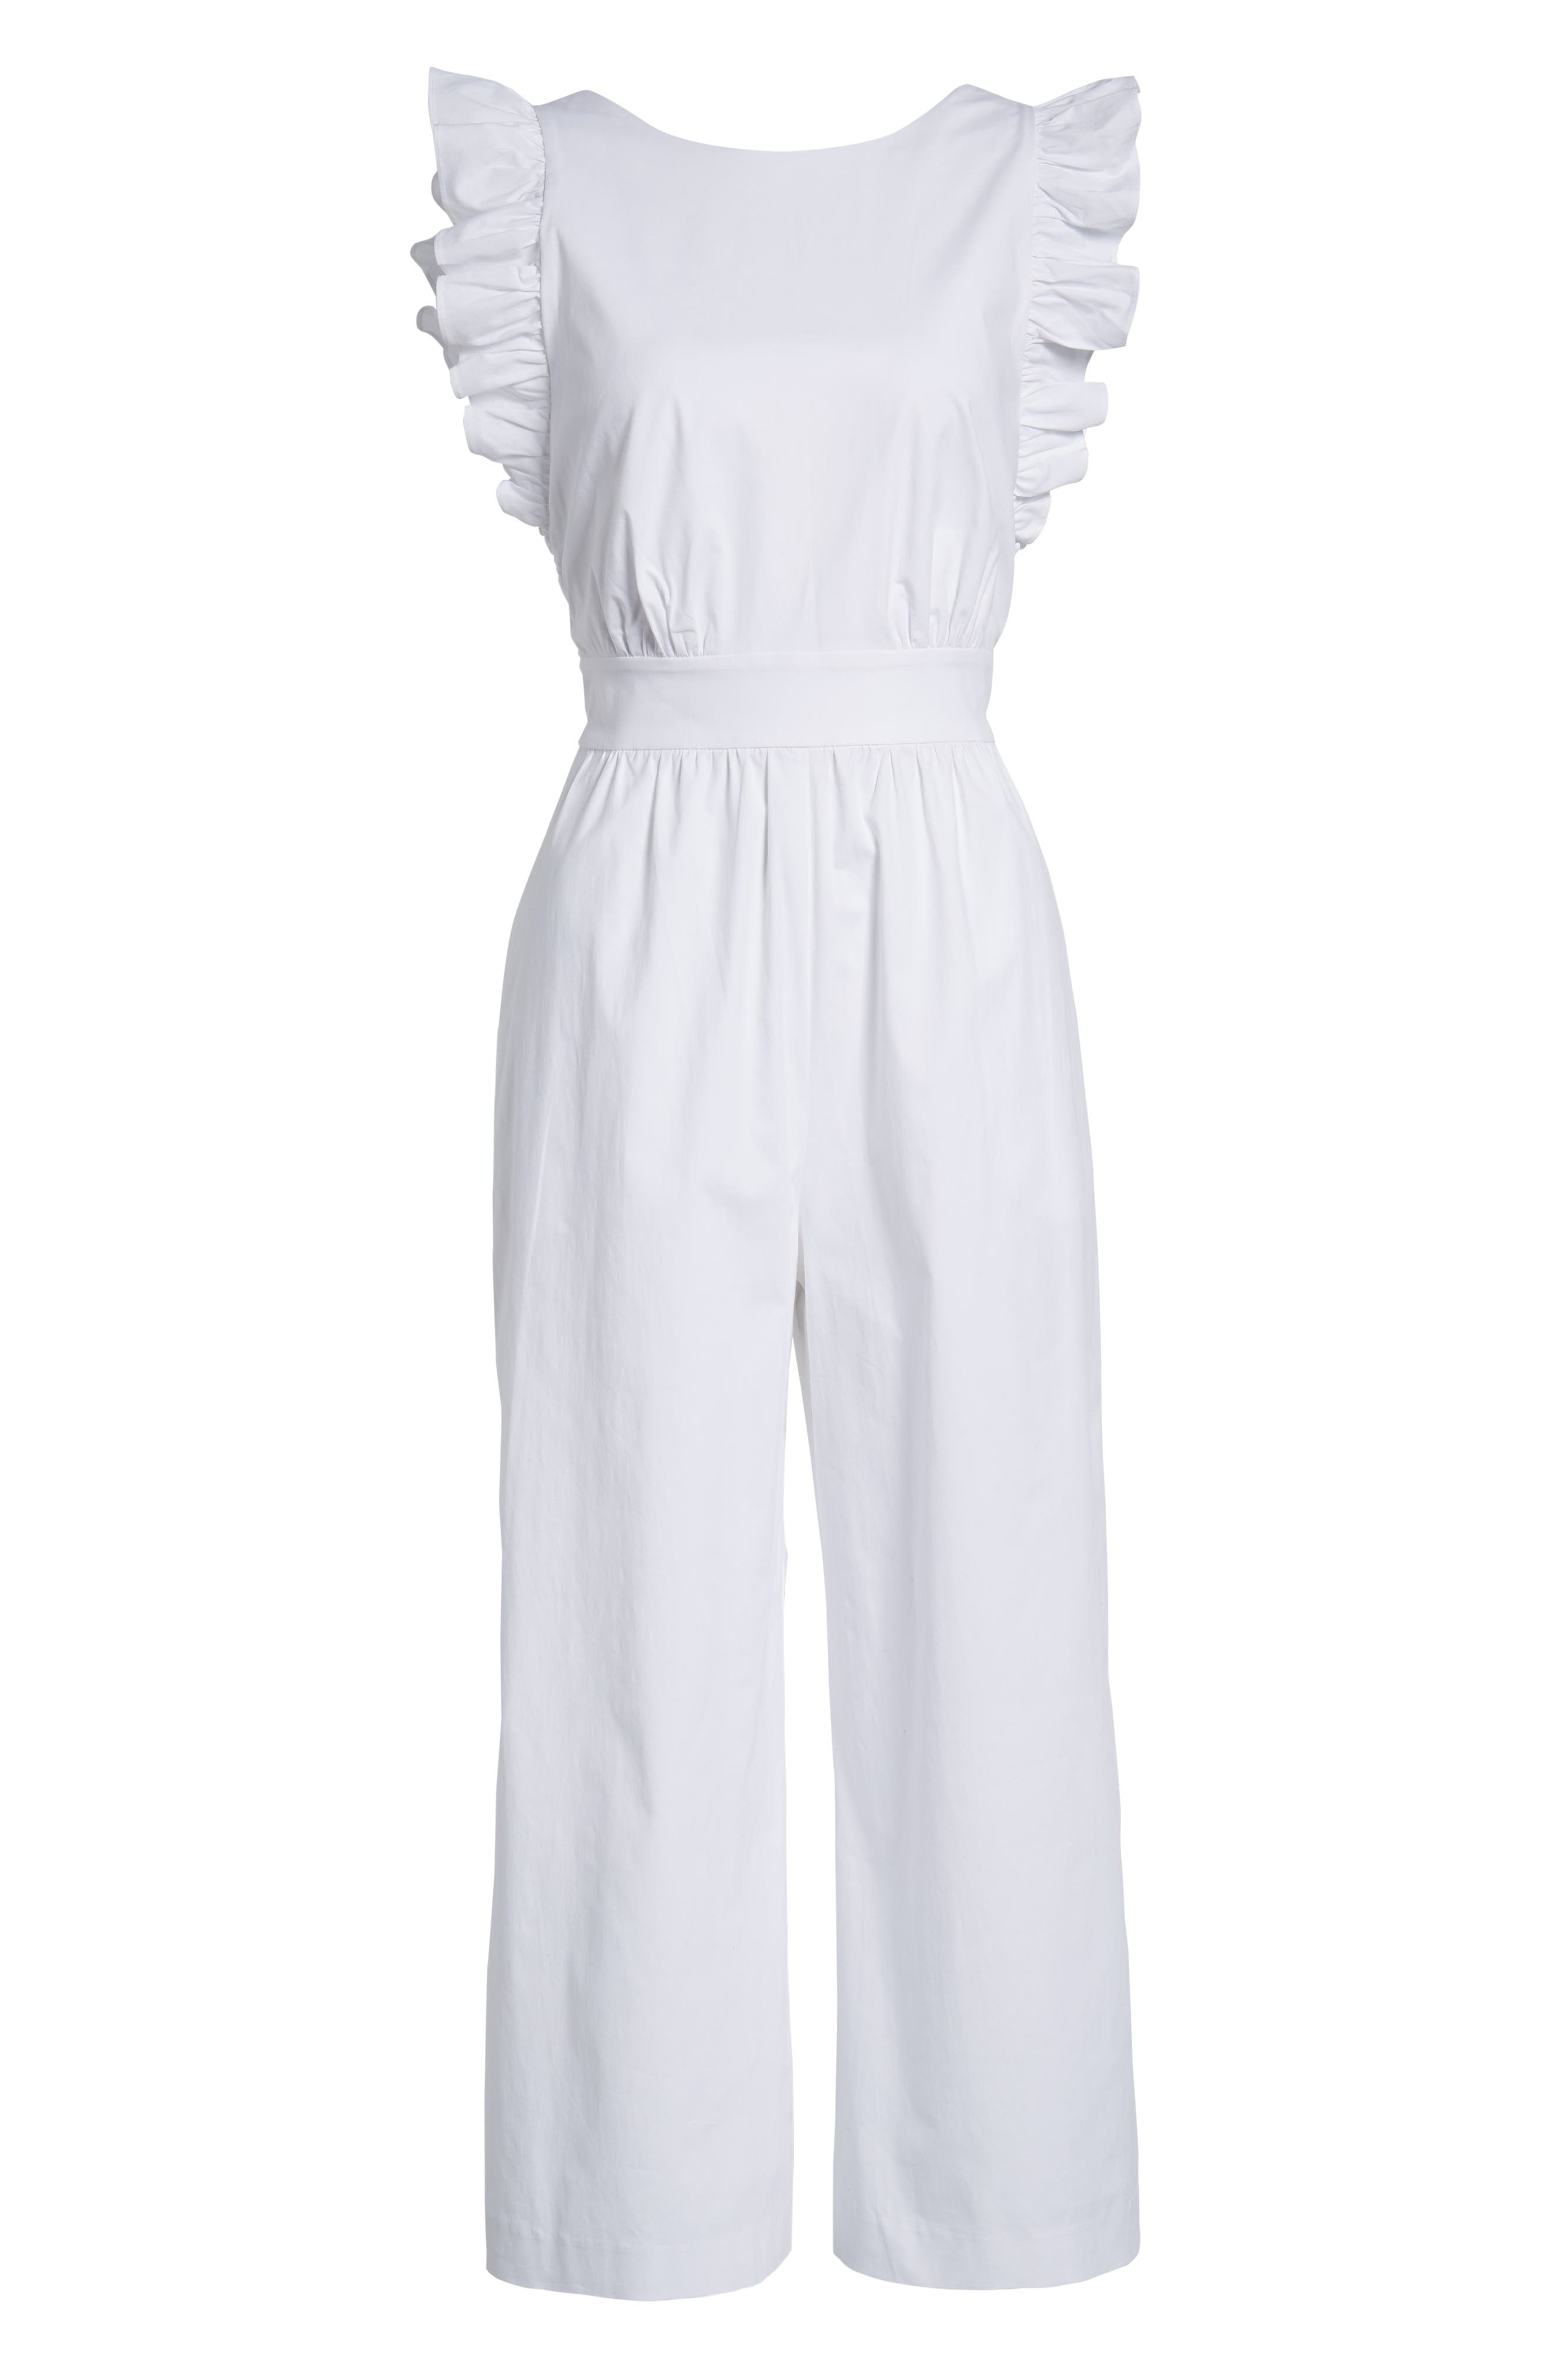 Ruffle Sleeve Crop Jumpsuit,                             Alternate thumbnail 6, color,                             100